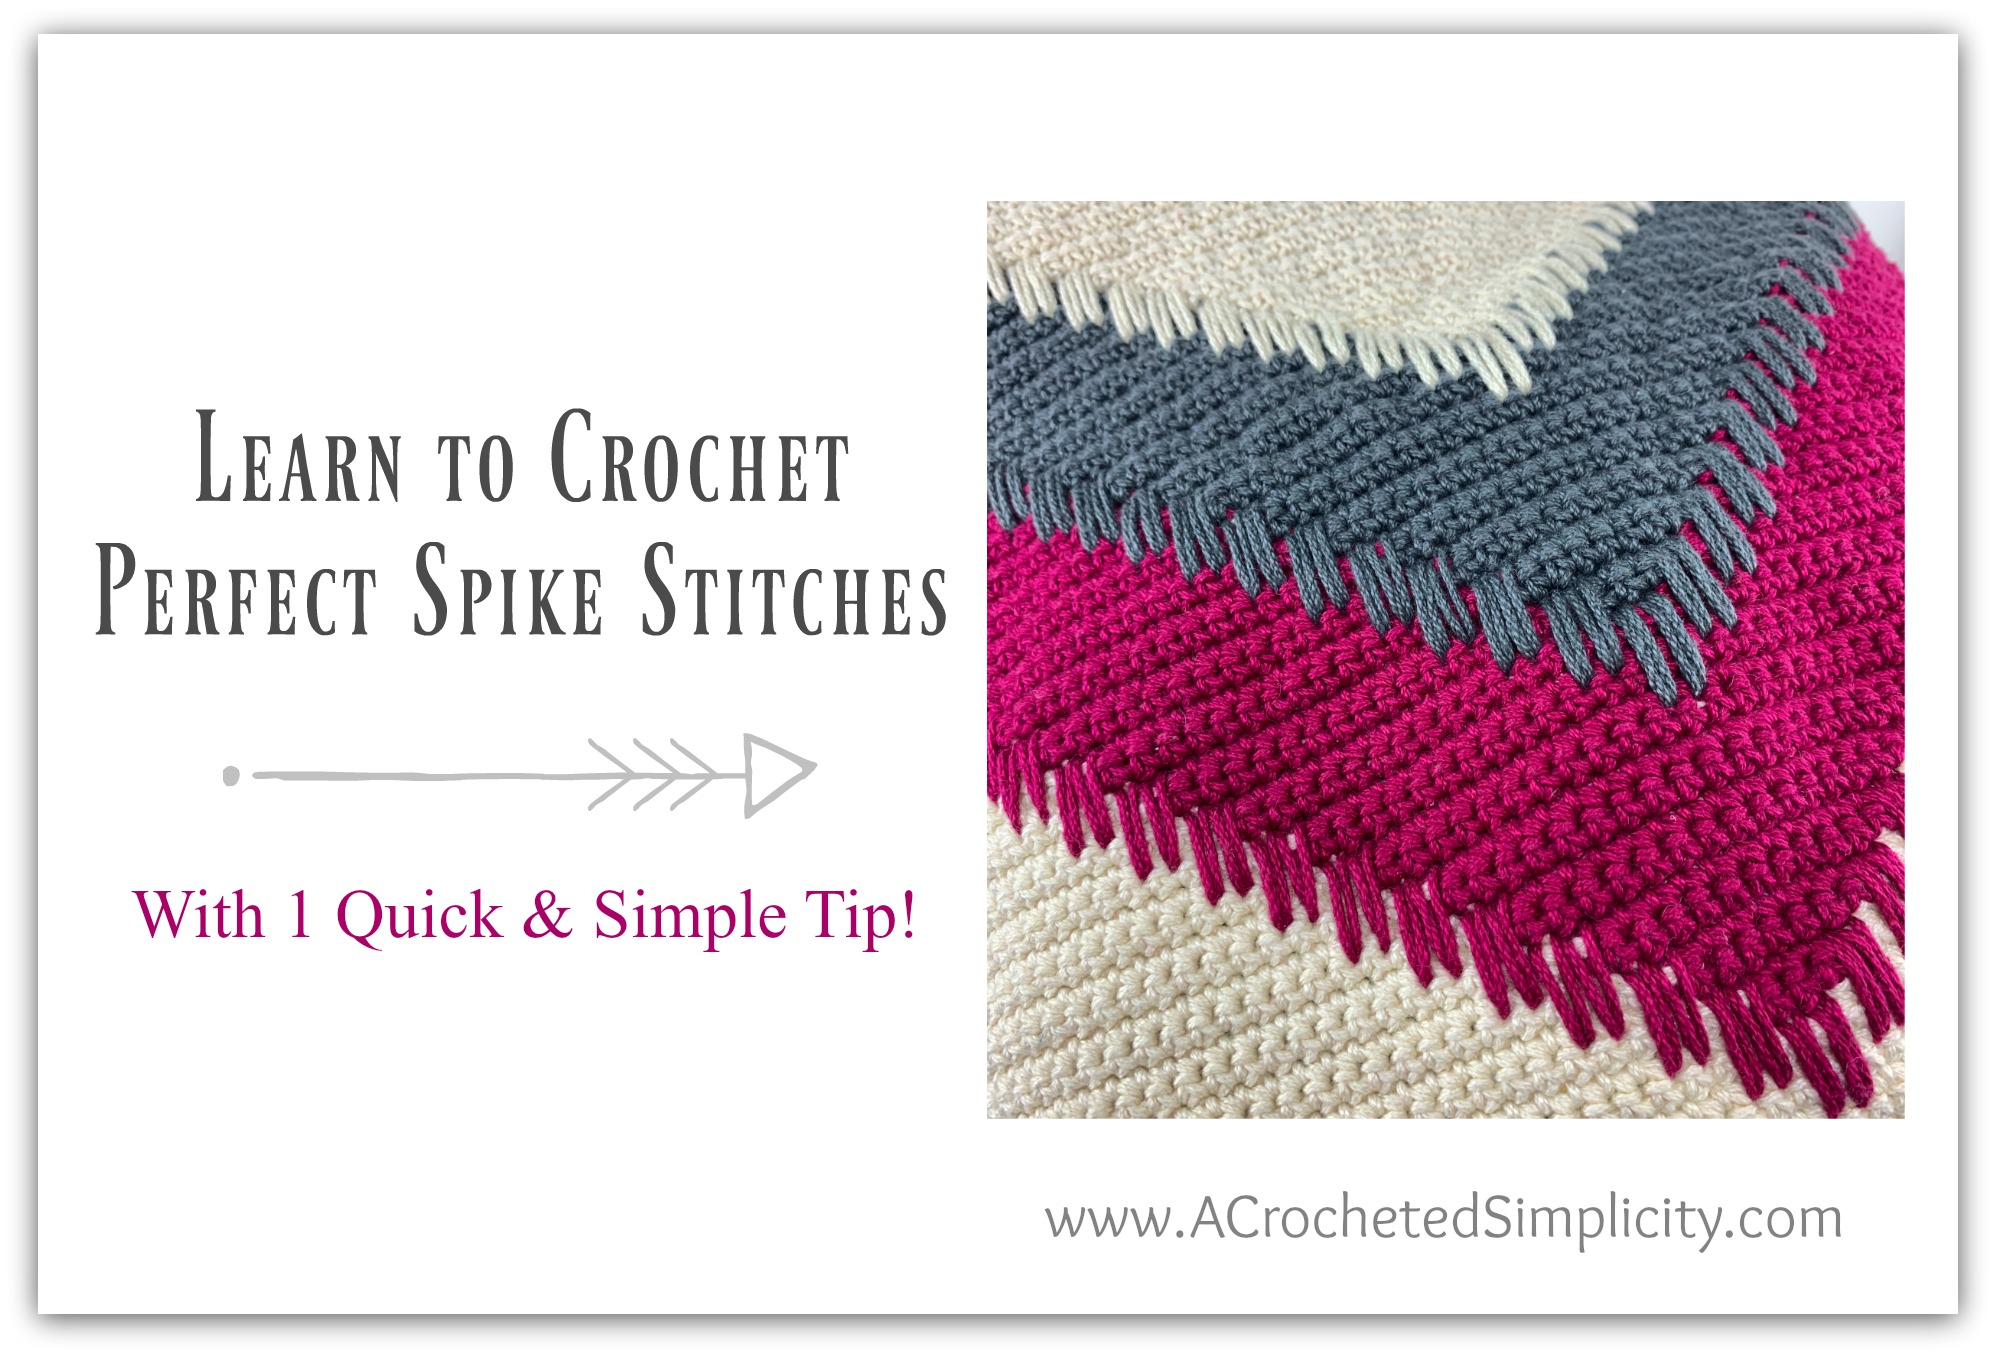 1 Quick & Simple Tip for crocheting PERFECT Spike Stitches - Video Tutorial by A Crocheted Simplicity#crochetvideotutorial #crochetstitchtutorial #crochetspikestitch #crochettip #freecrochetpattern #crochetvideo